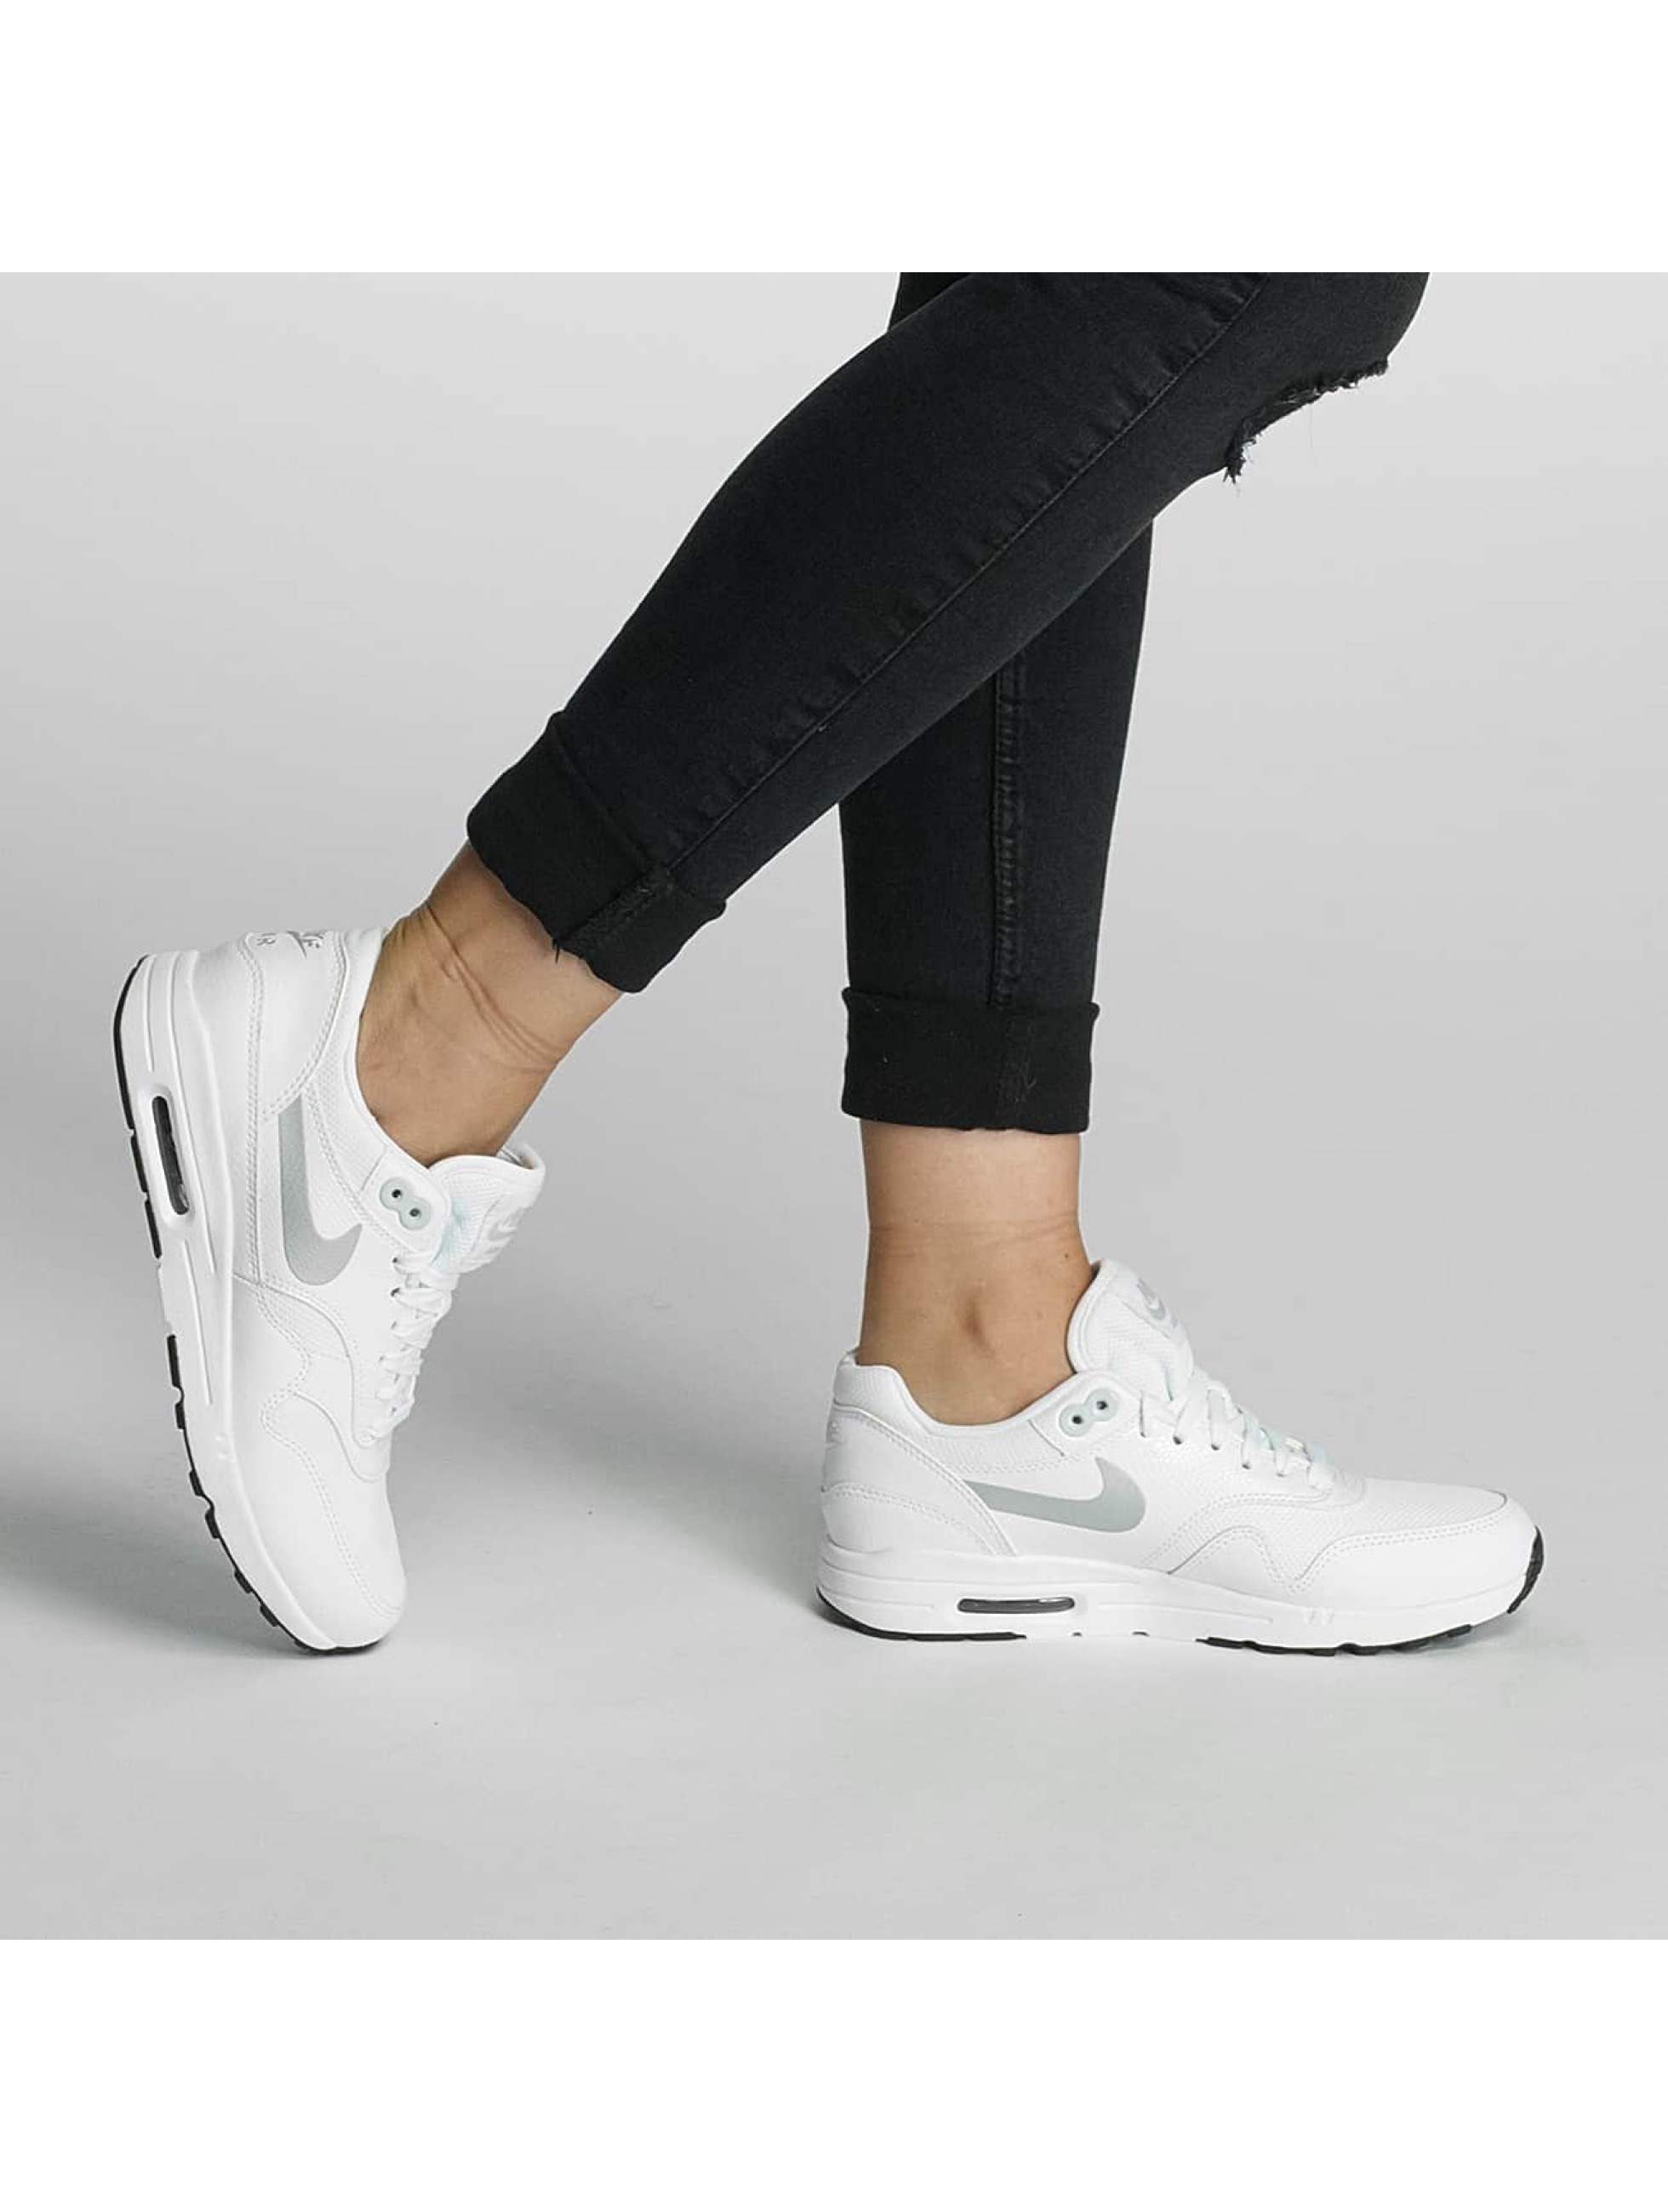 Nike Sneakers Women's Air Max 1 Ultra 2.0 biela